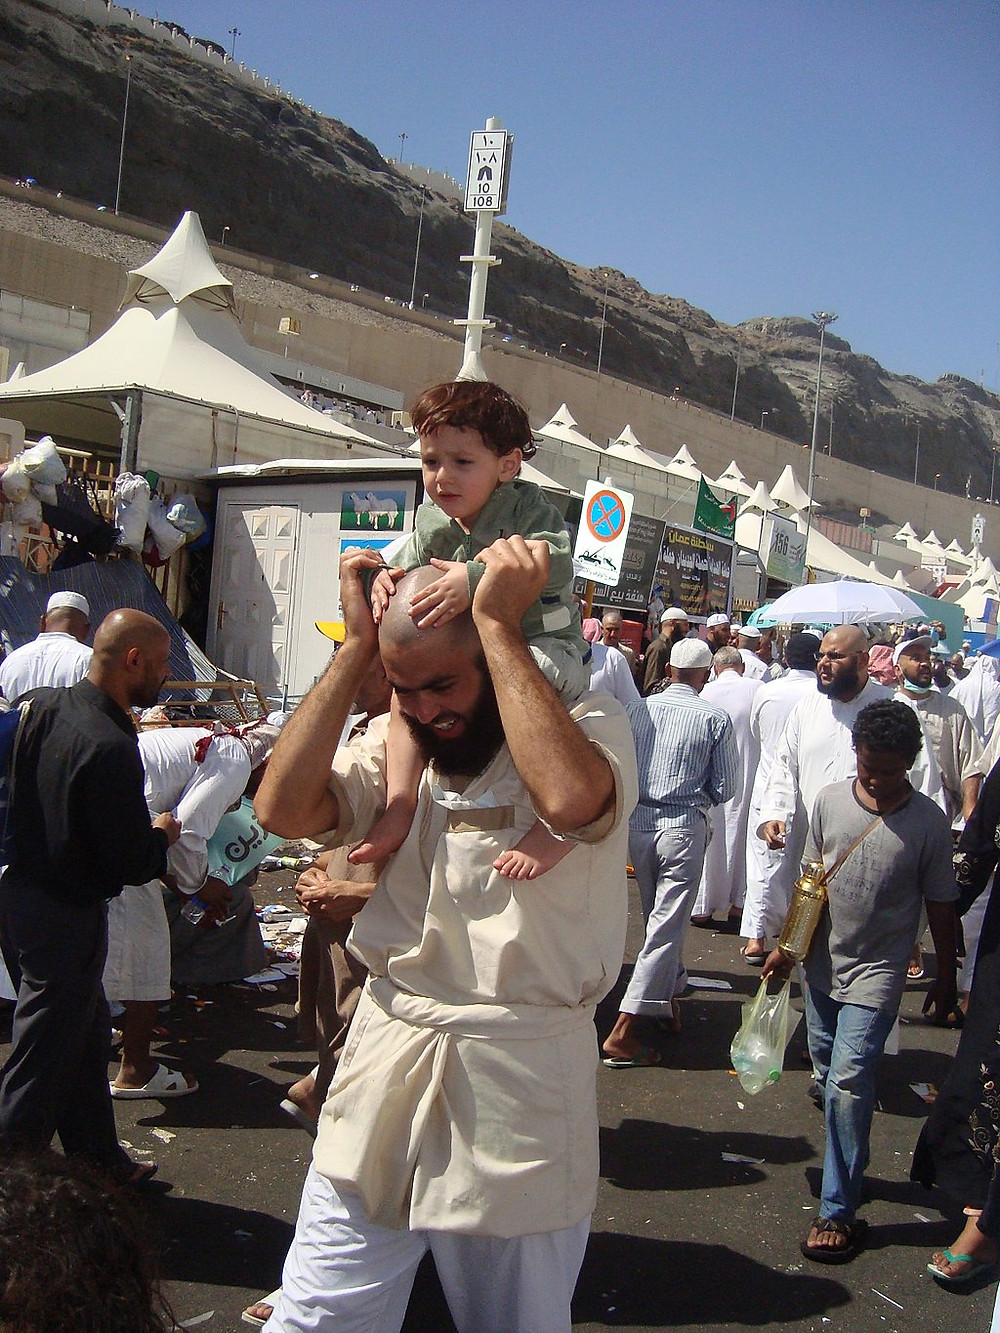 Kemosh shaving and clothing during Hajj (Image credit: Aiman titi (Own work) [CC BY-SA 3.0 (https://creativecommons.org/licenses/by-sa/3.0) or GFDL (http://www.gnu.org/copyleft/fdl.html)], via Wikimedia Commons)